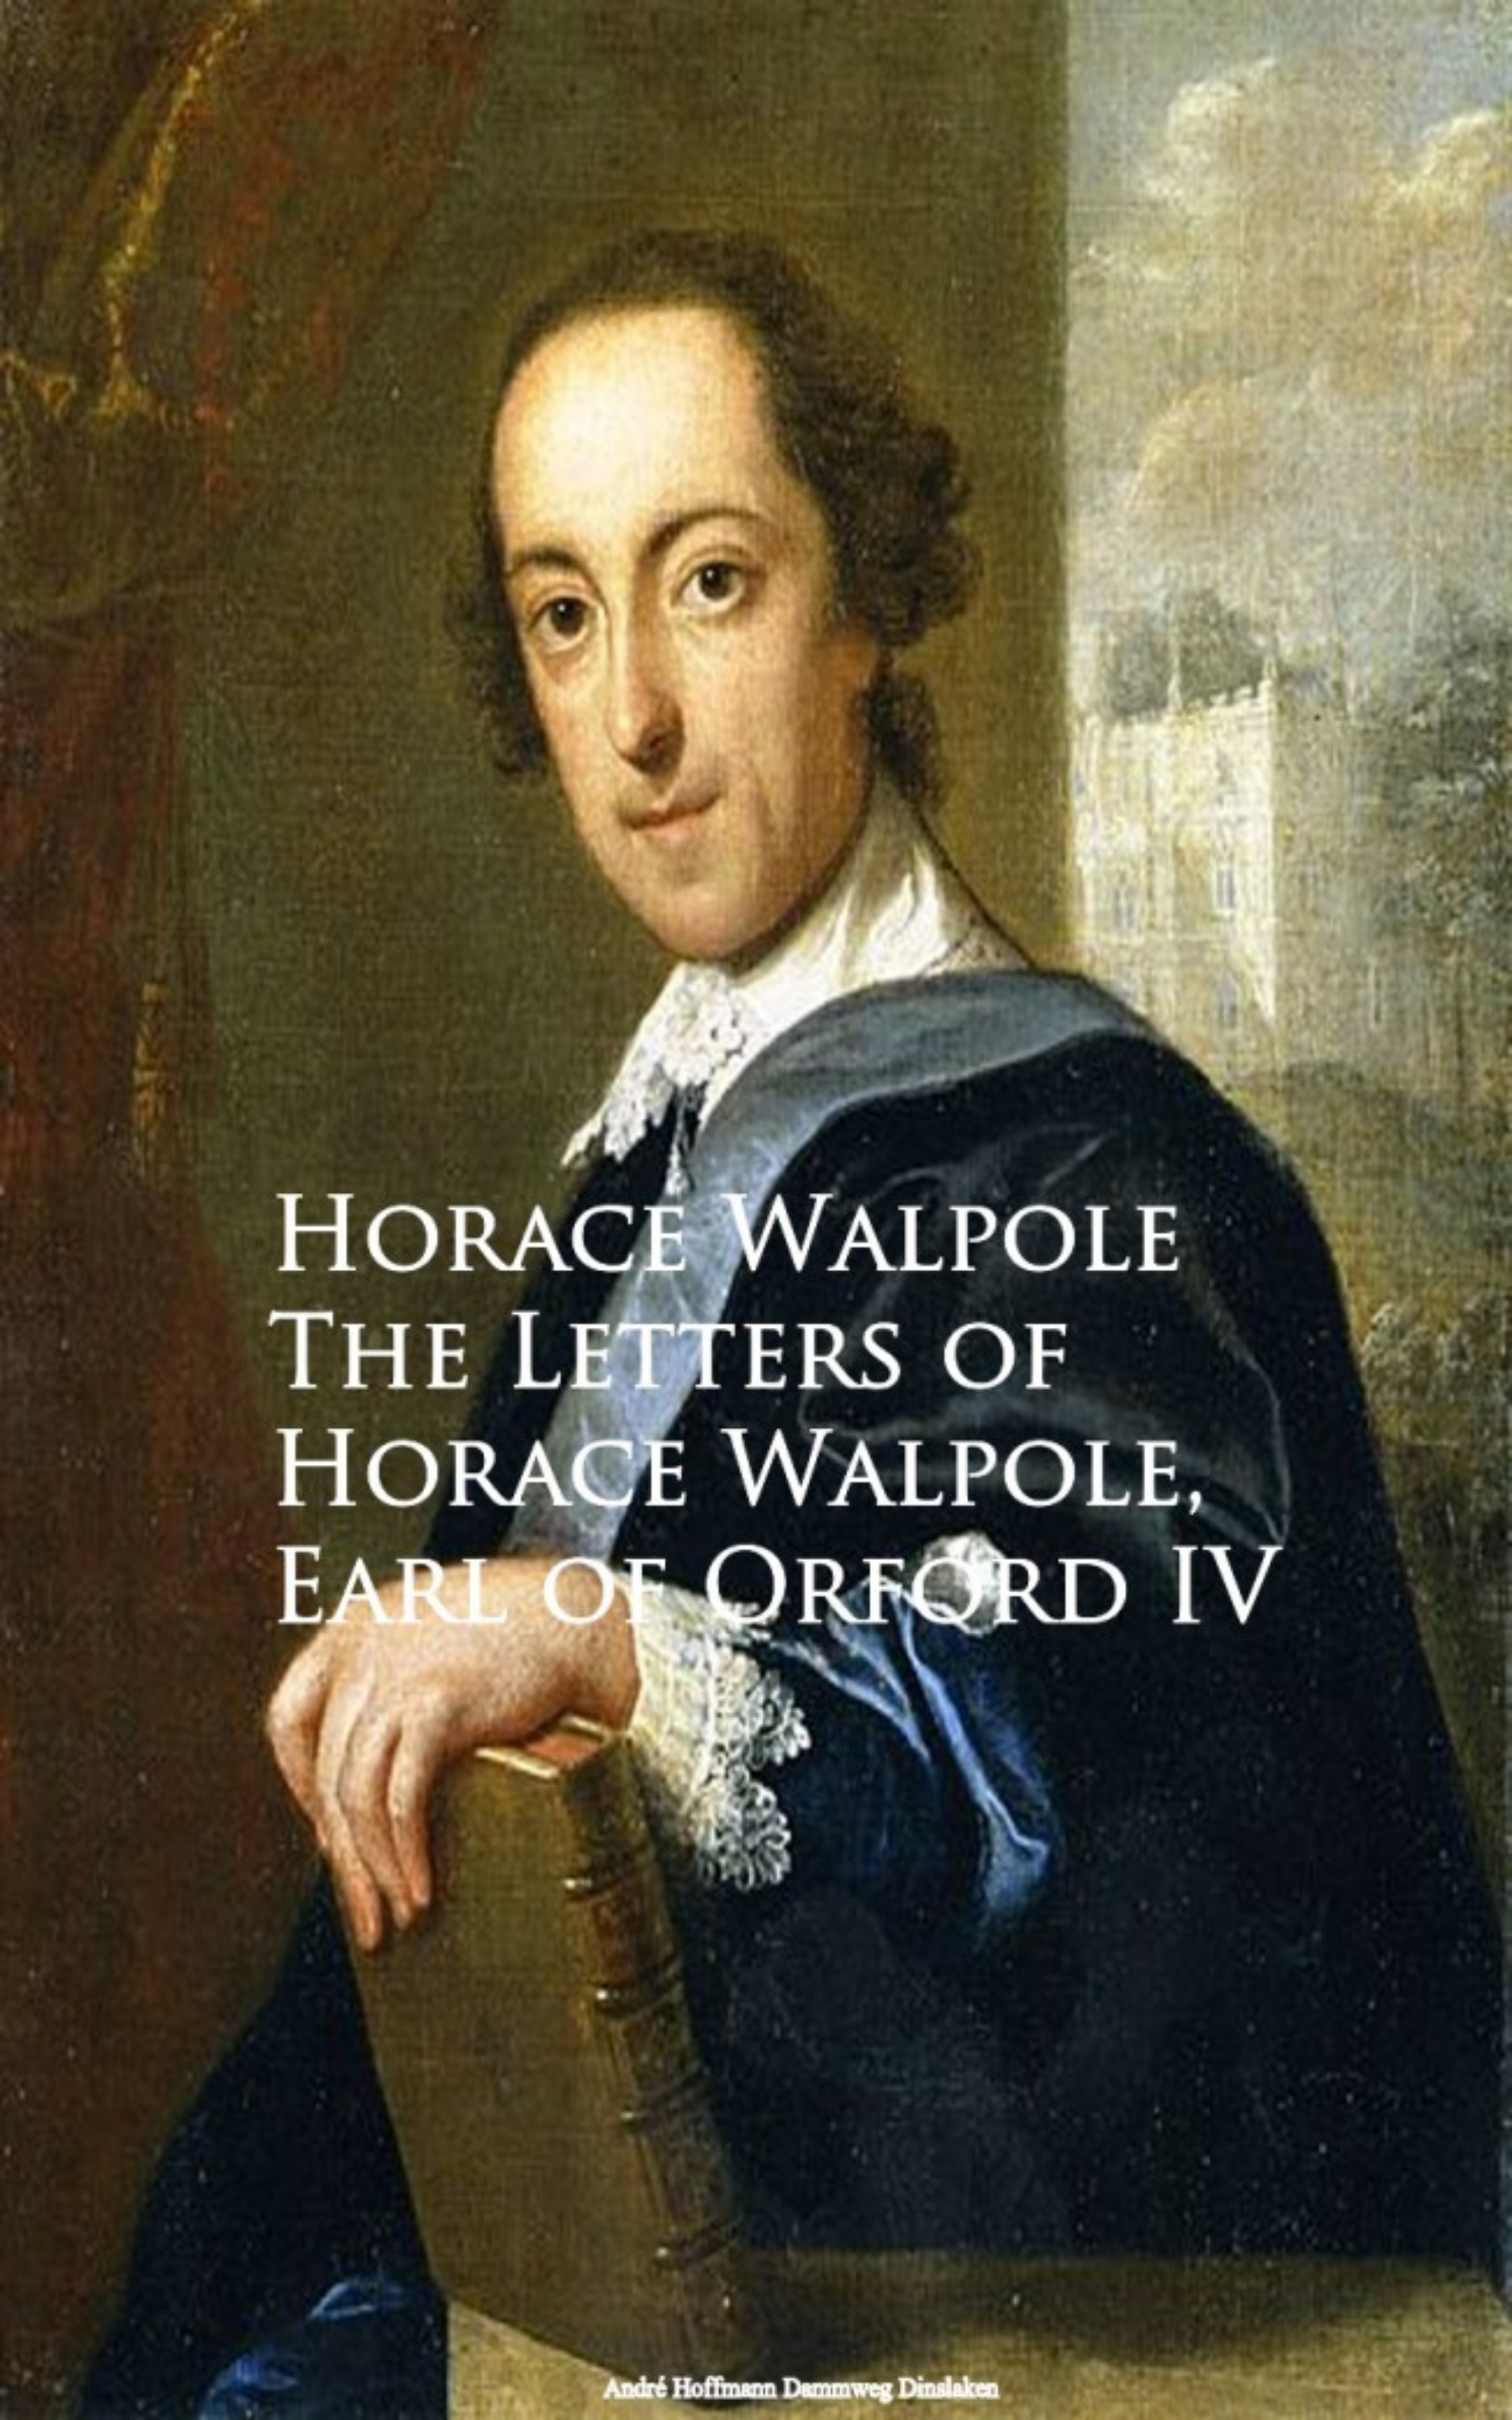 Horace Walpole The Letters of Horace Walpole, Earl of Orford IV fletcher horace a b c of snap shooting